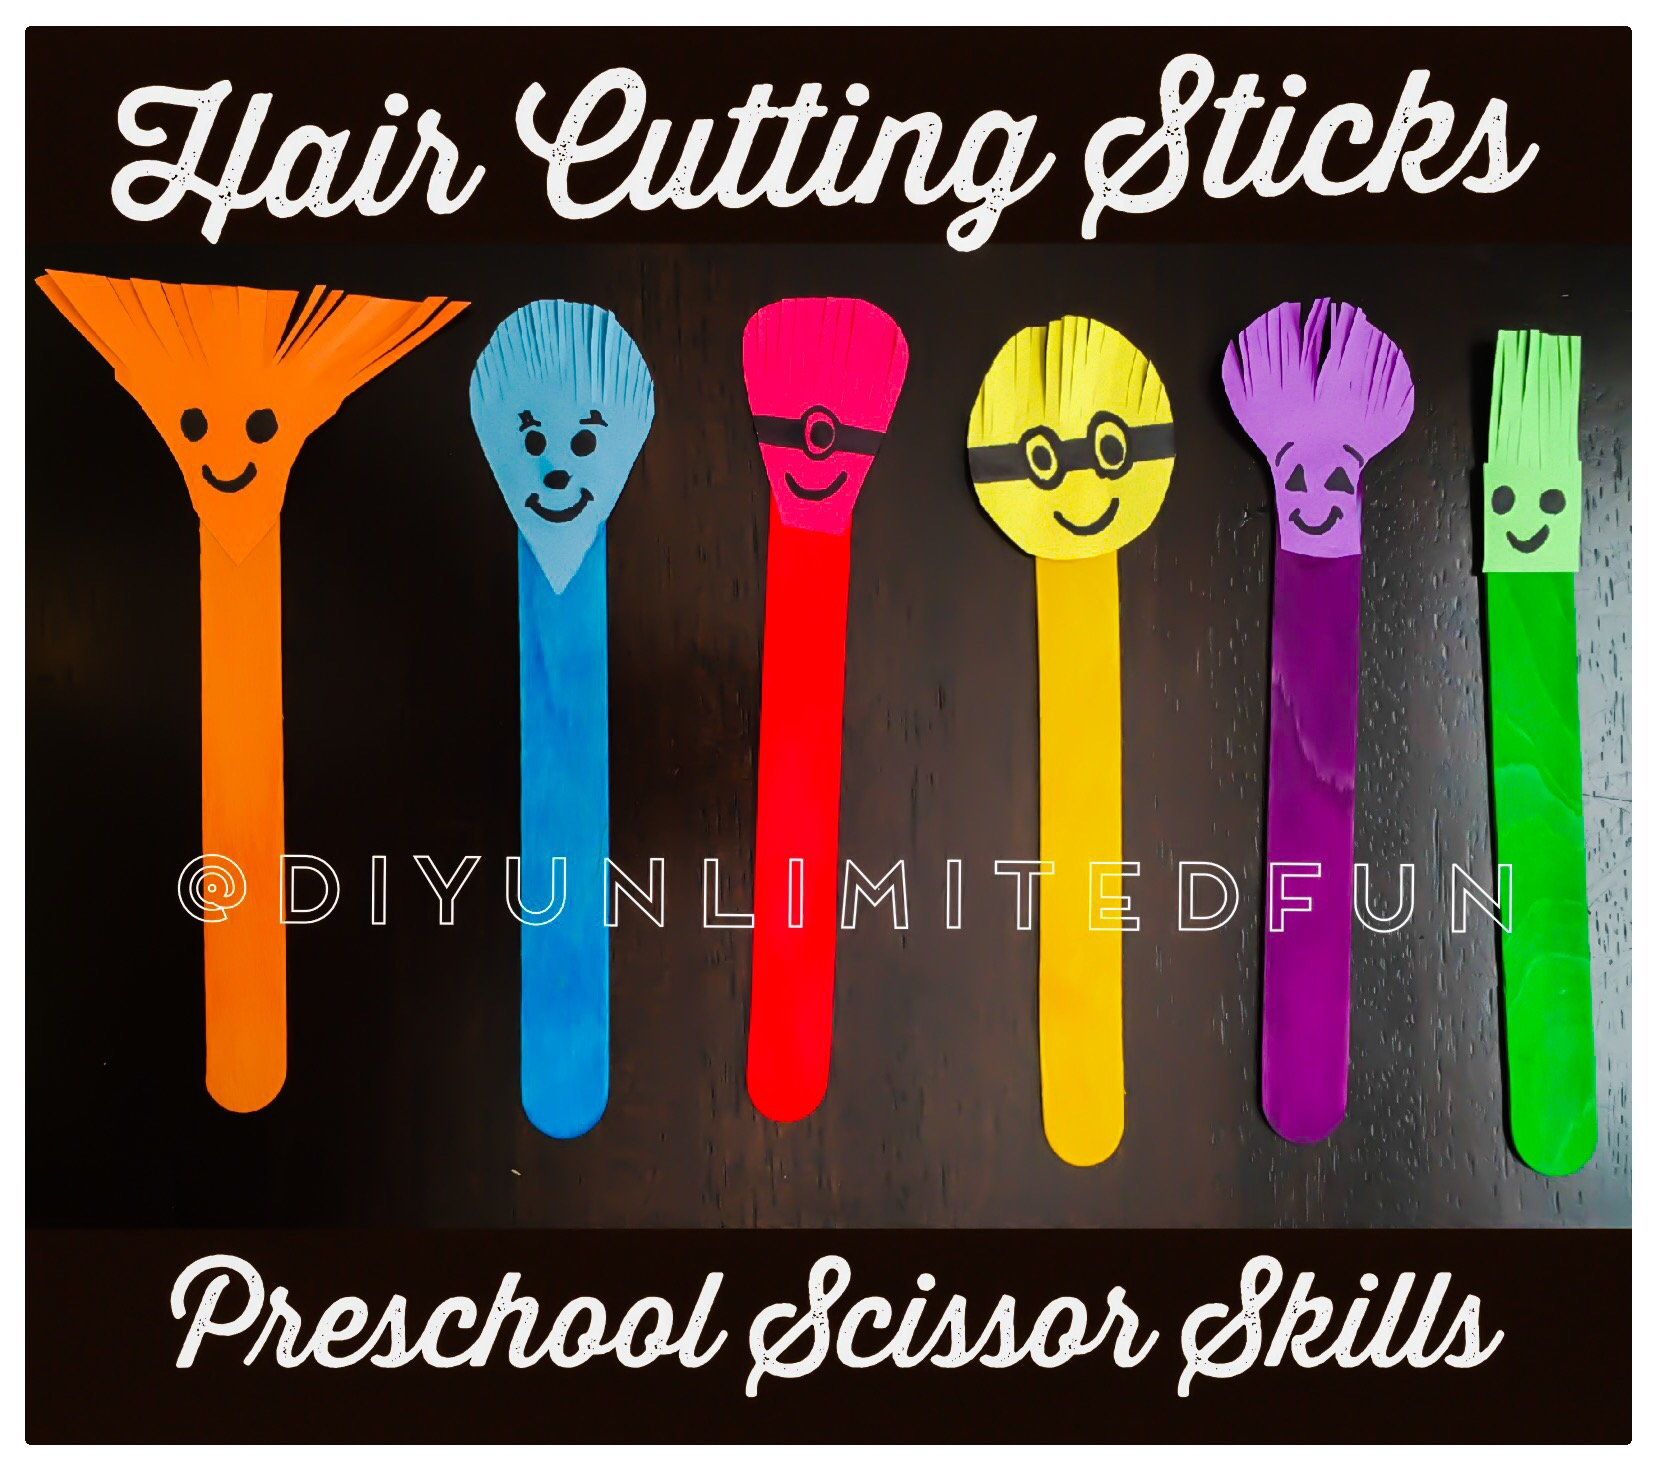 Hair Cutting Sticks Preschool Scissor Skills Simple Diys Kids Activities